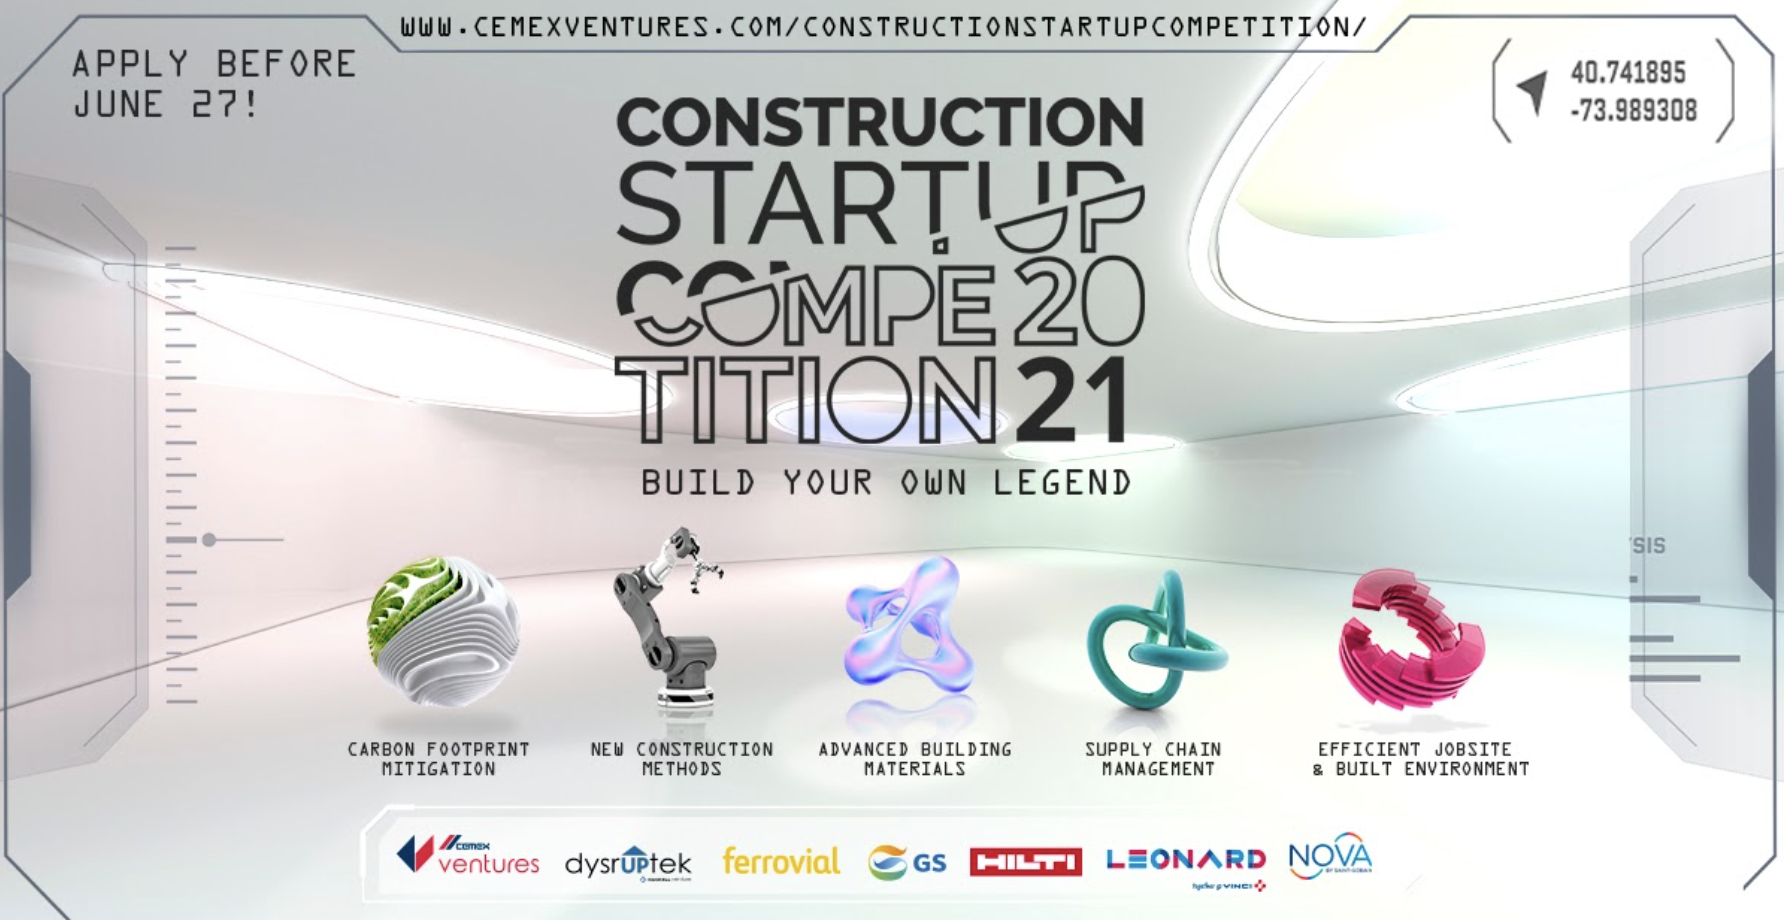 Leonard, a partner in the Construction Startup Competition 2021